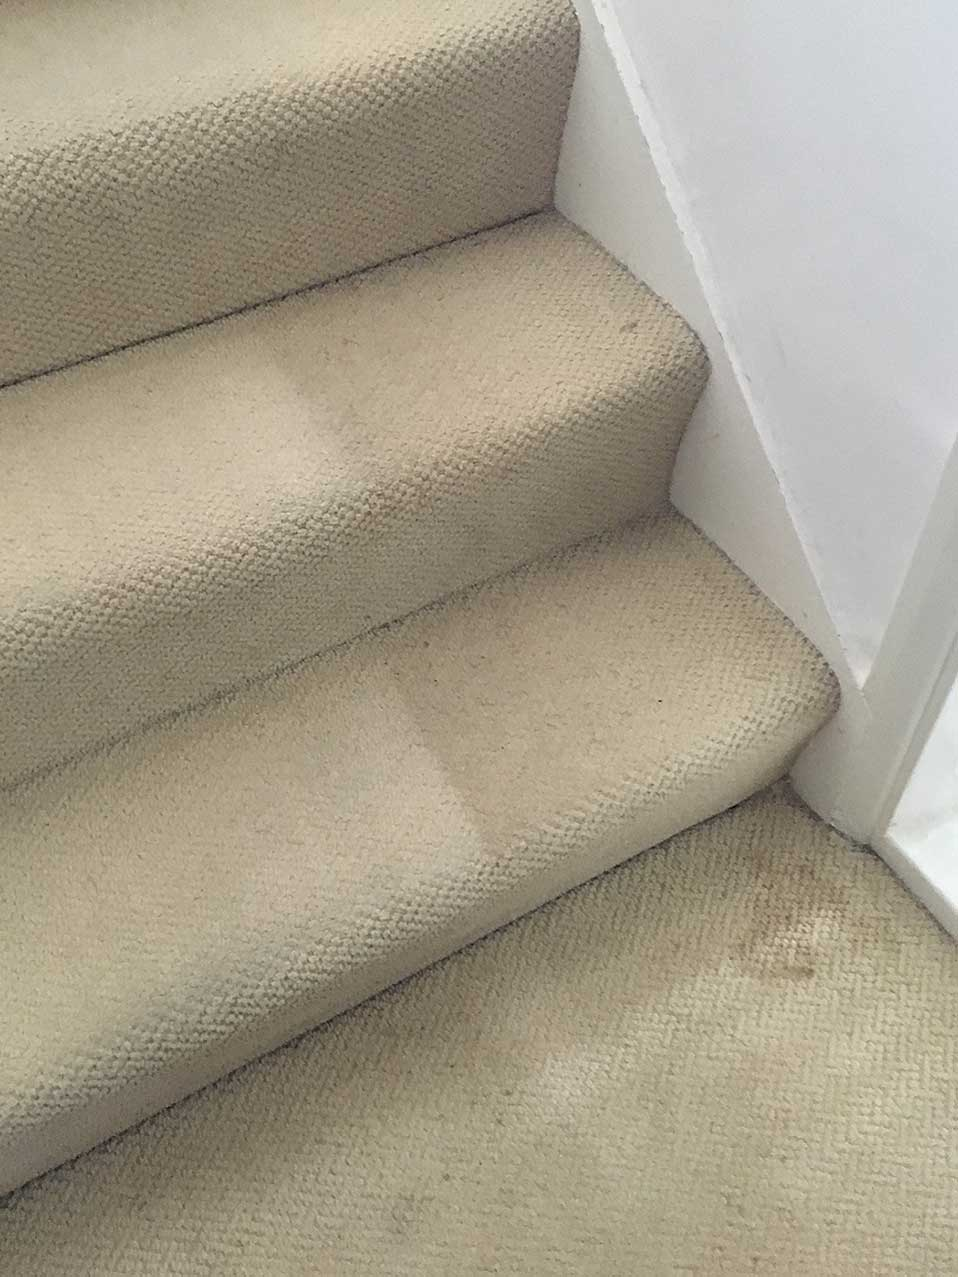 abbey-cleaning-stairs-carpet-cleaning-before